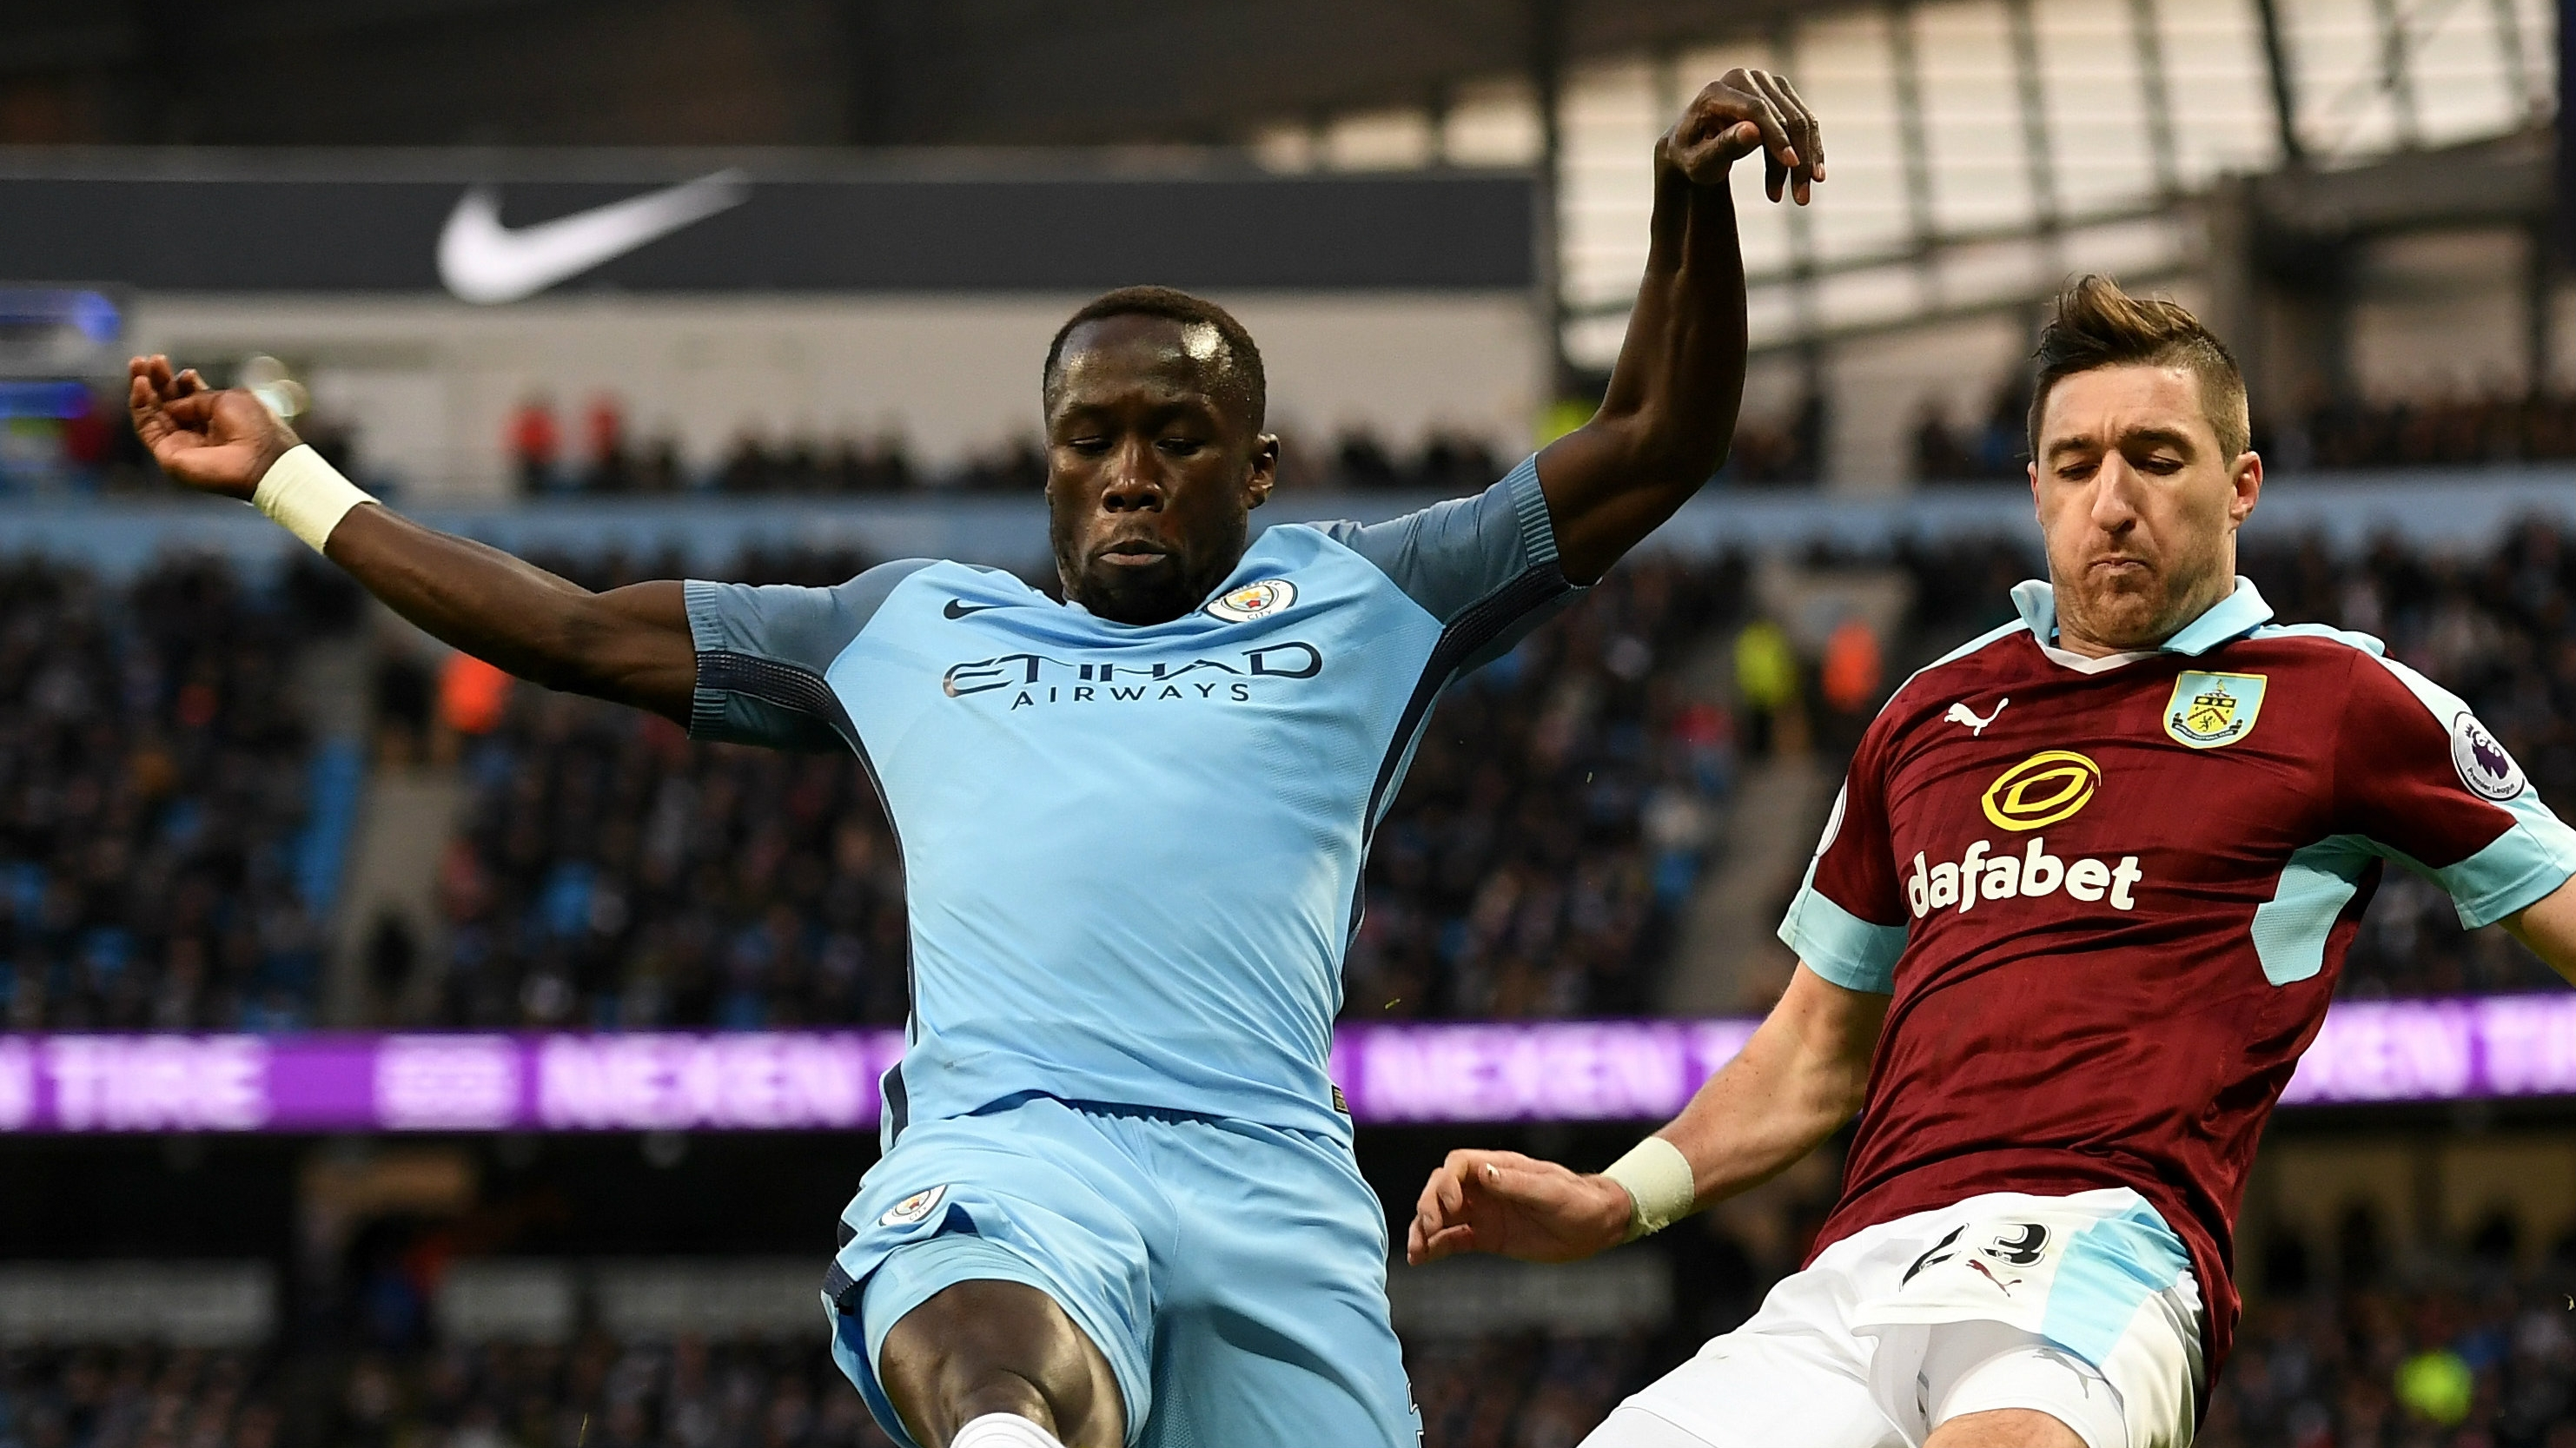 10 against 12 - City's Bacary Sagna faces an FA charge of misconduct after venting his frustrations on social media following the 2-1 win over Burnley.